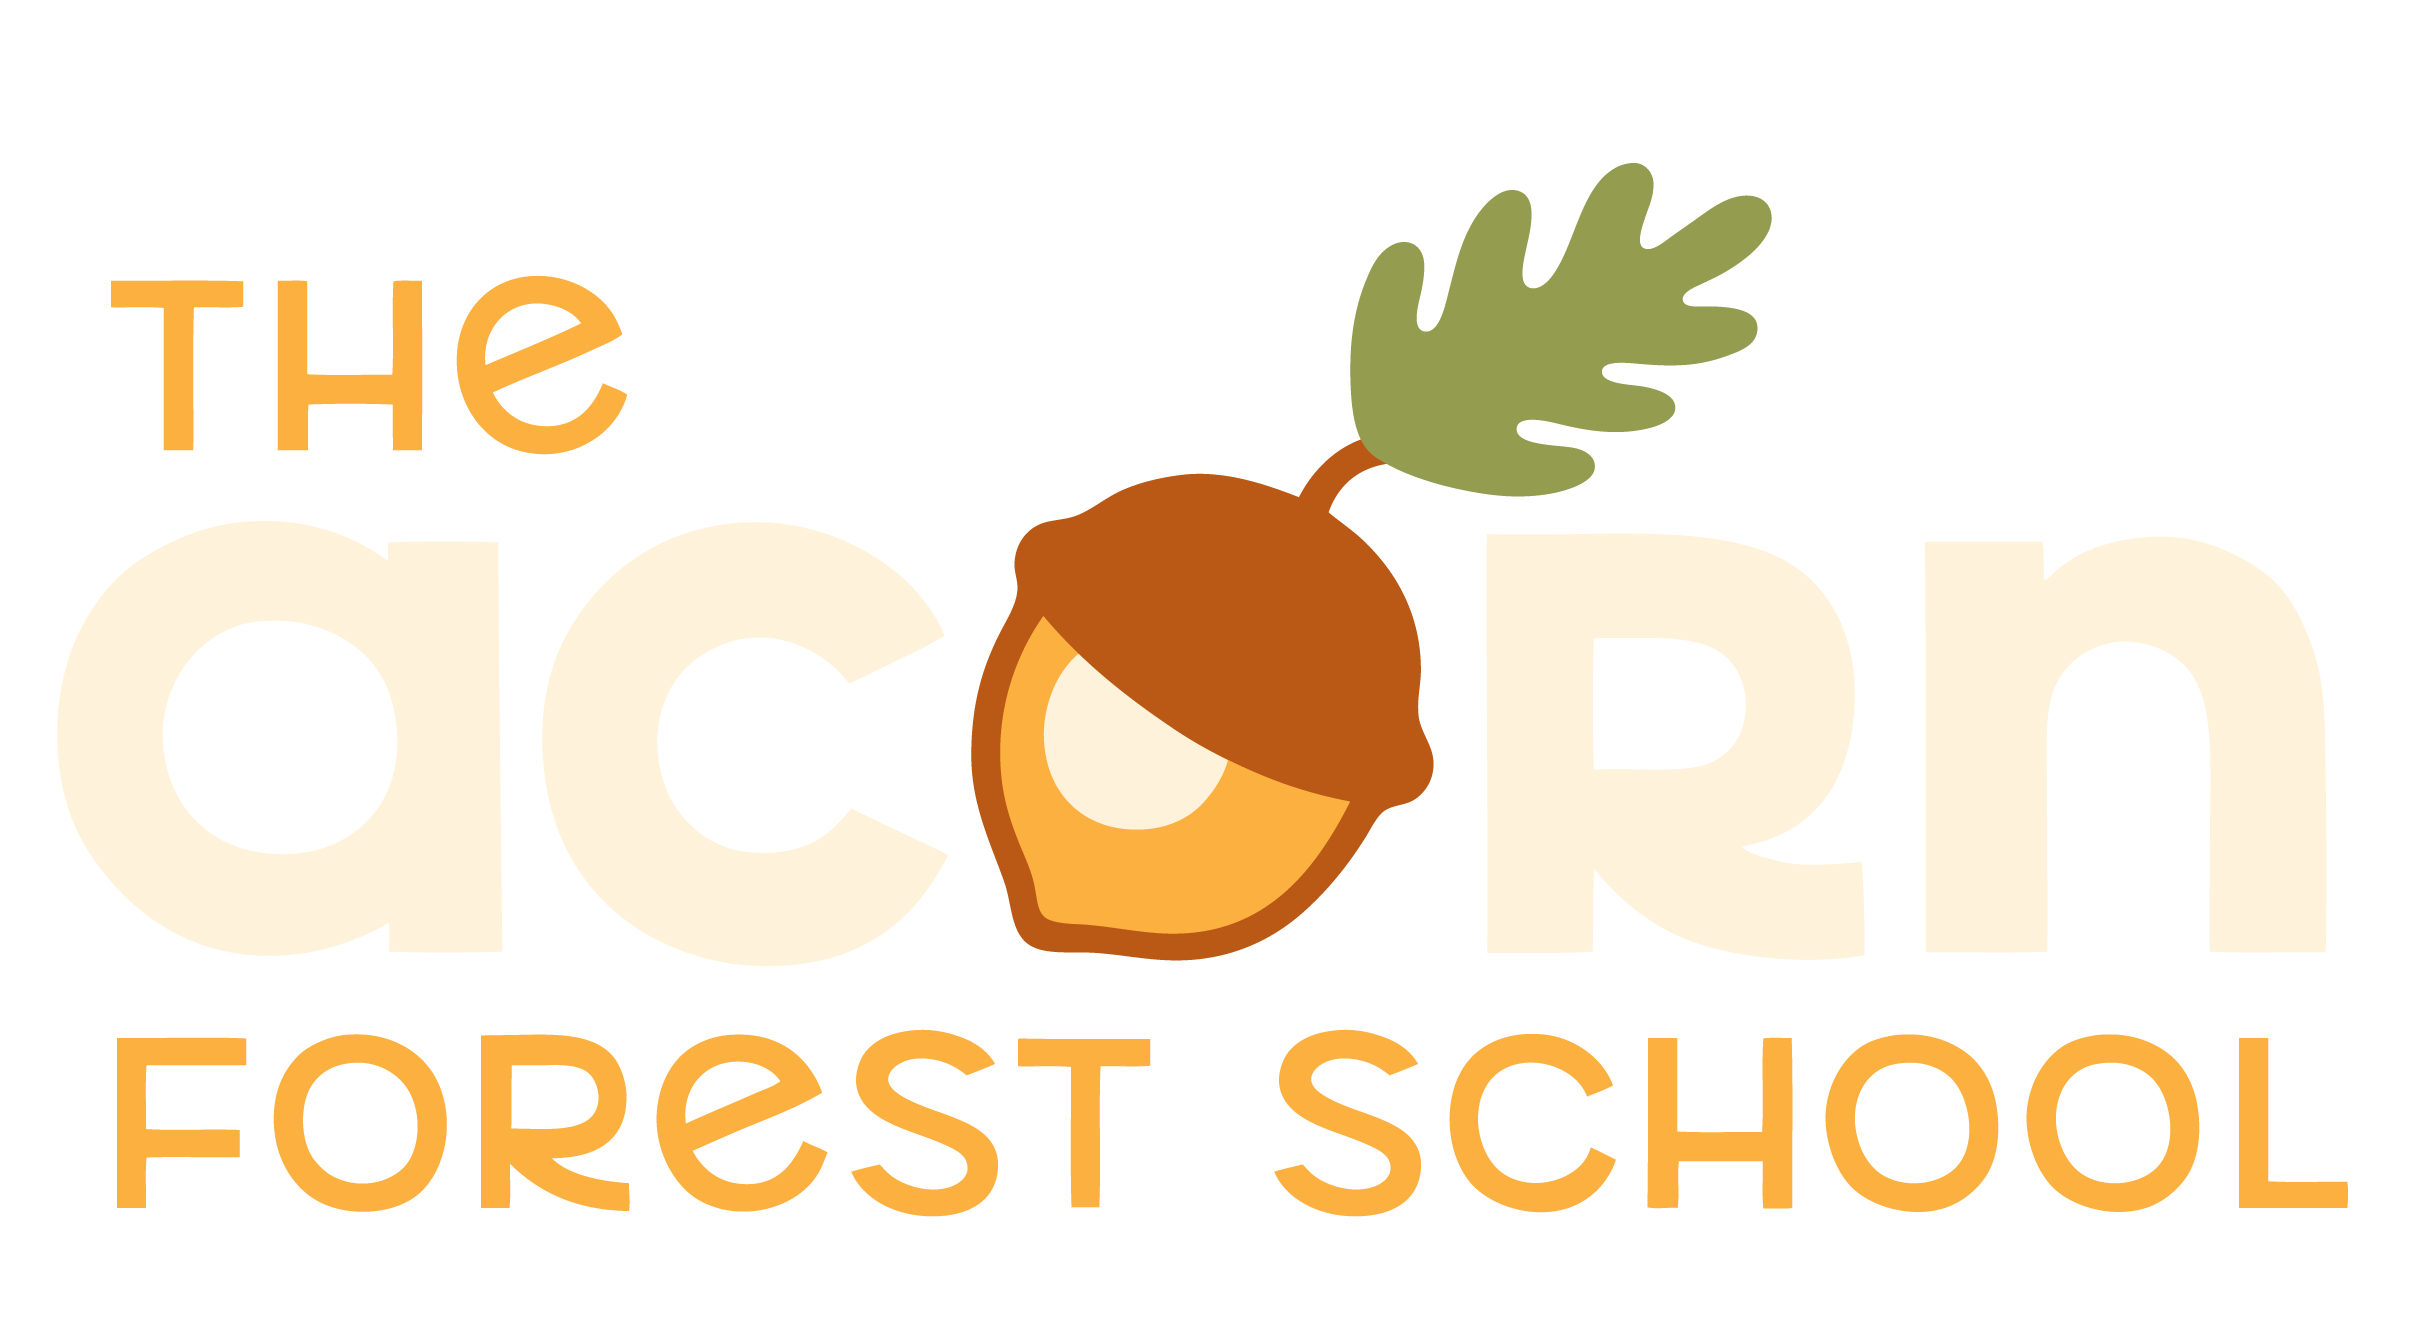 AcornForestSchool_logo_light.png